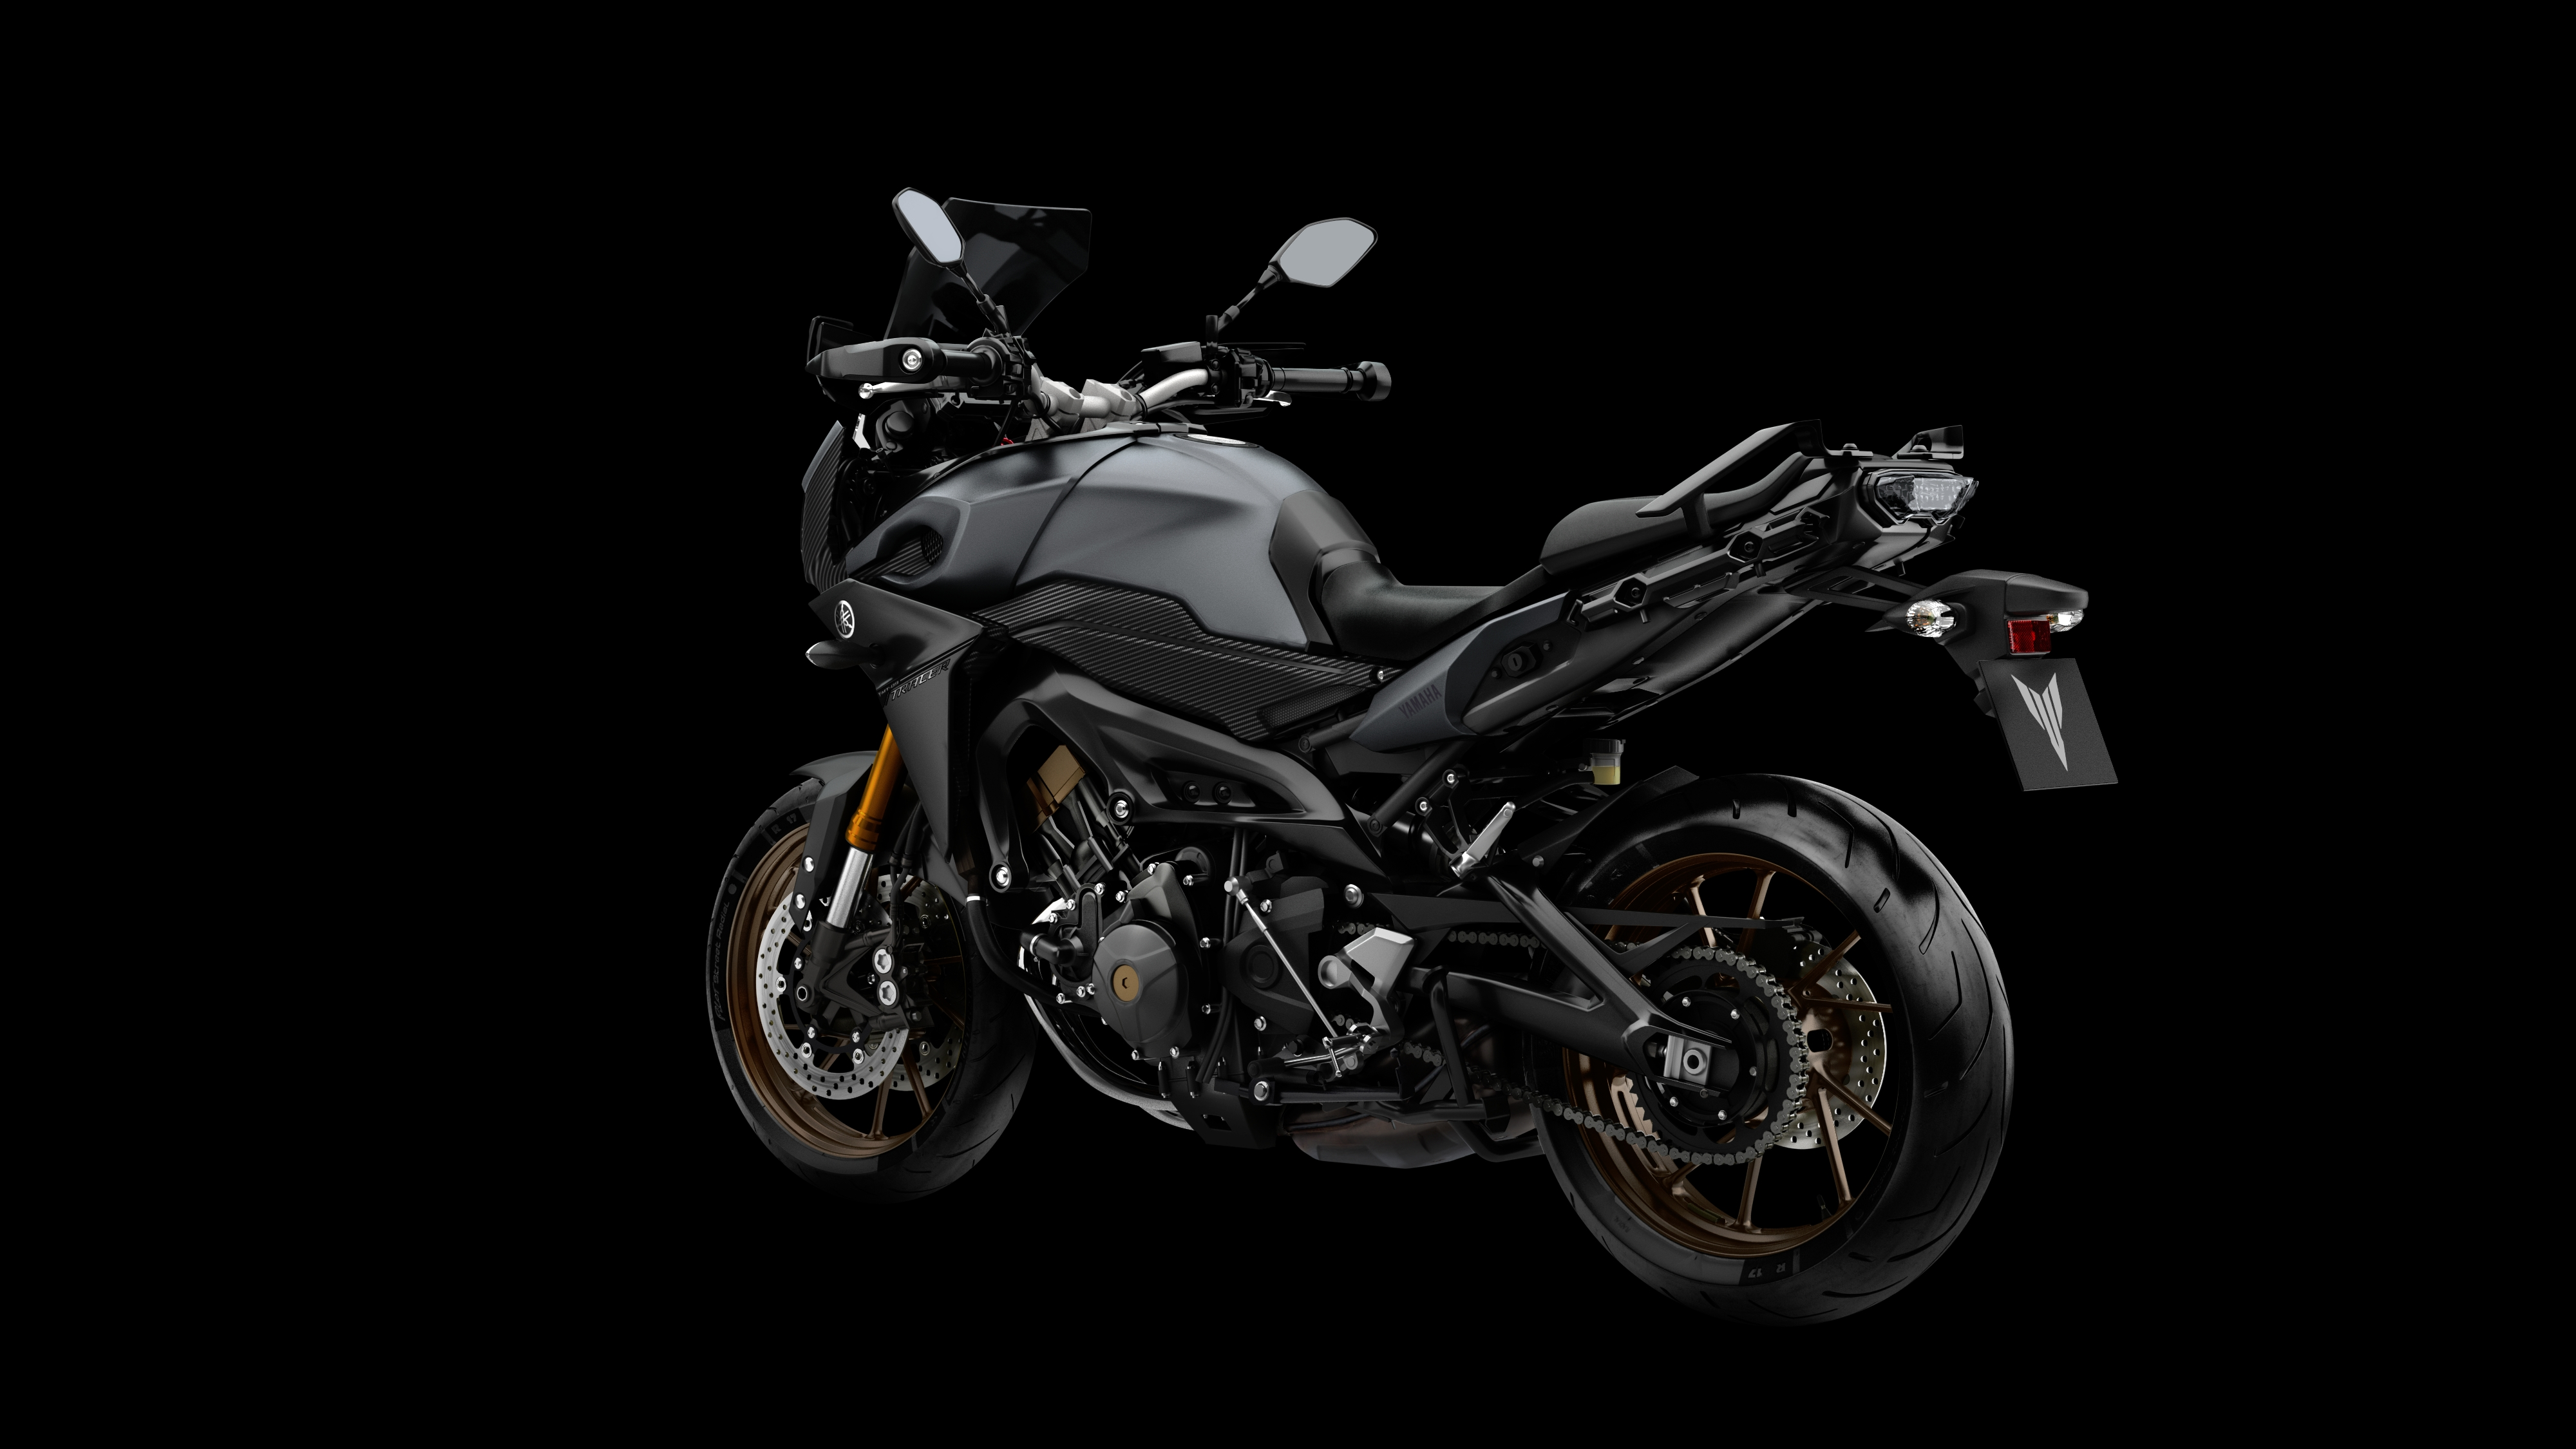 2016 yamaha mt 09 tracer in malaysia rm59 900 image 514853. Black Bedroom Furniture Sets. Home Design Ideas